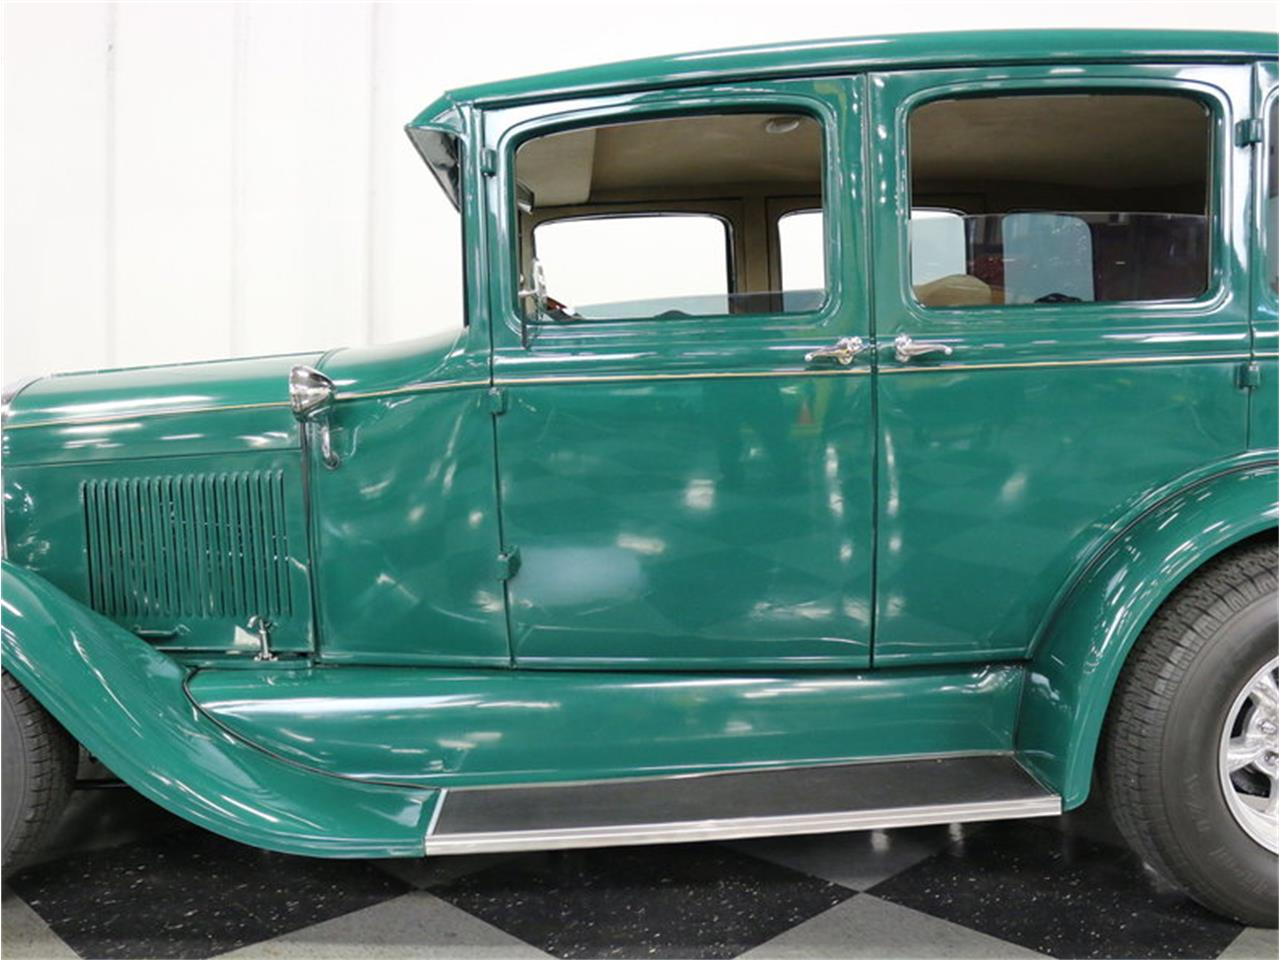 Large Picture of '29 Ford Model A located in Texas Offered by Streetside Classics - Dallas / Fort Worth - MAV8